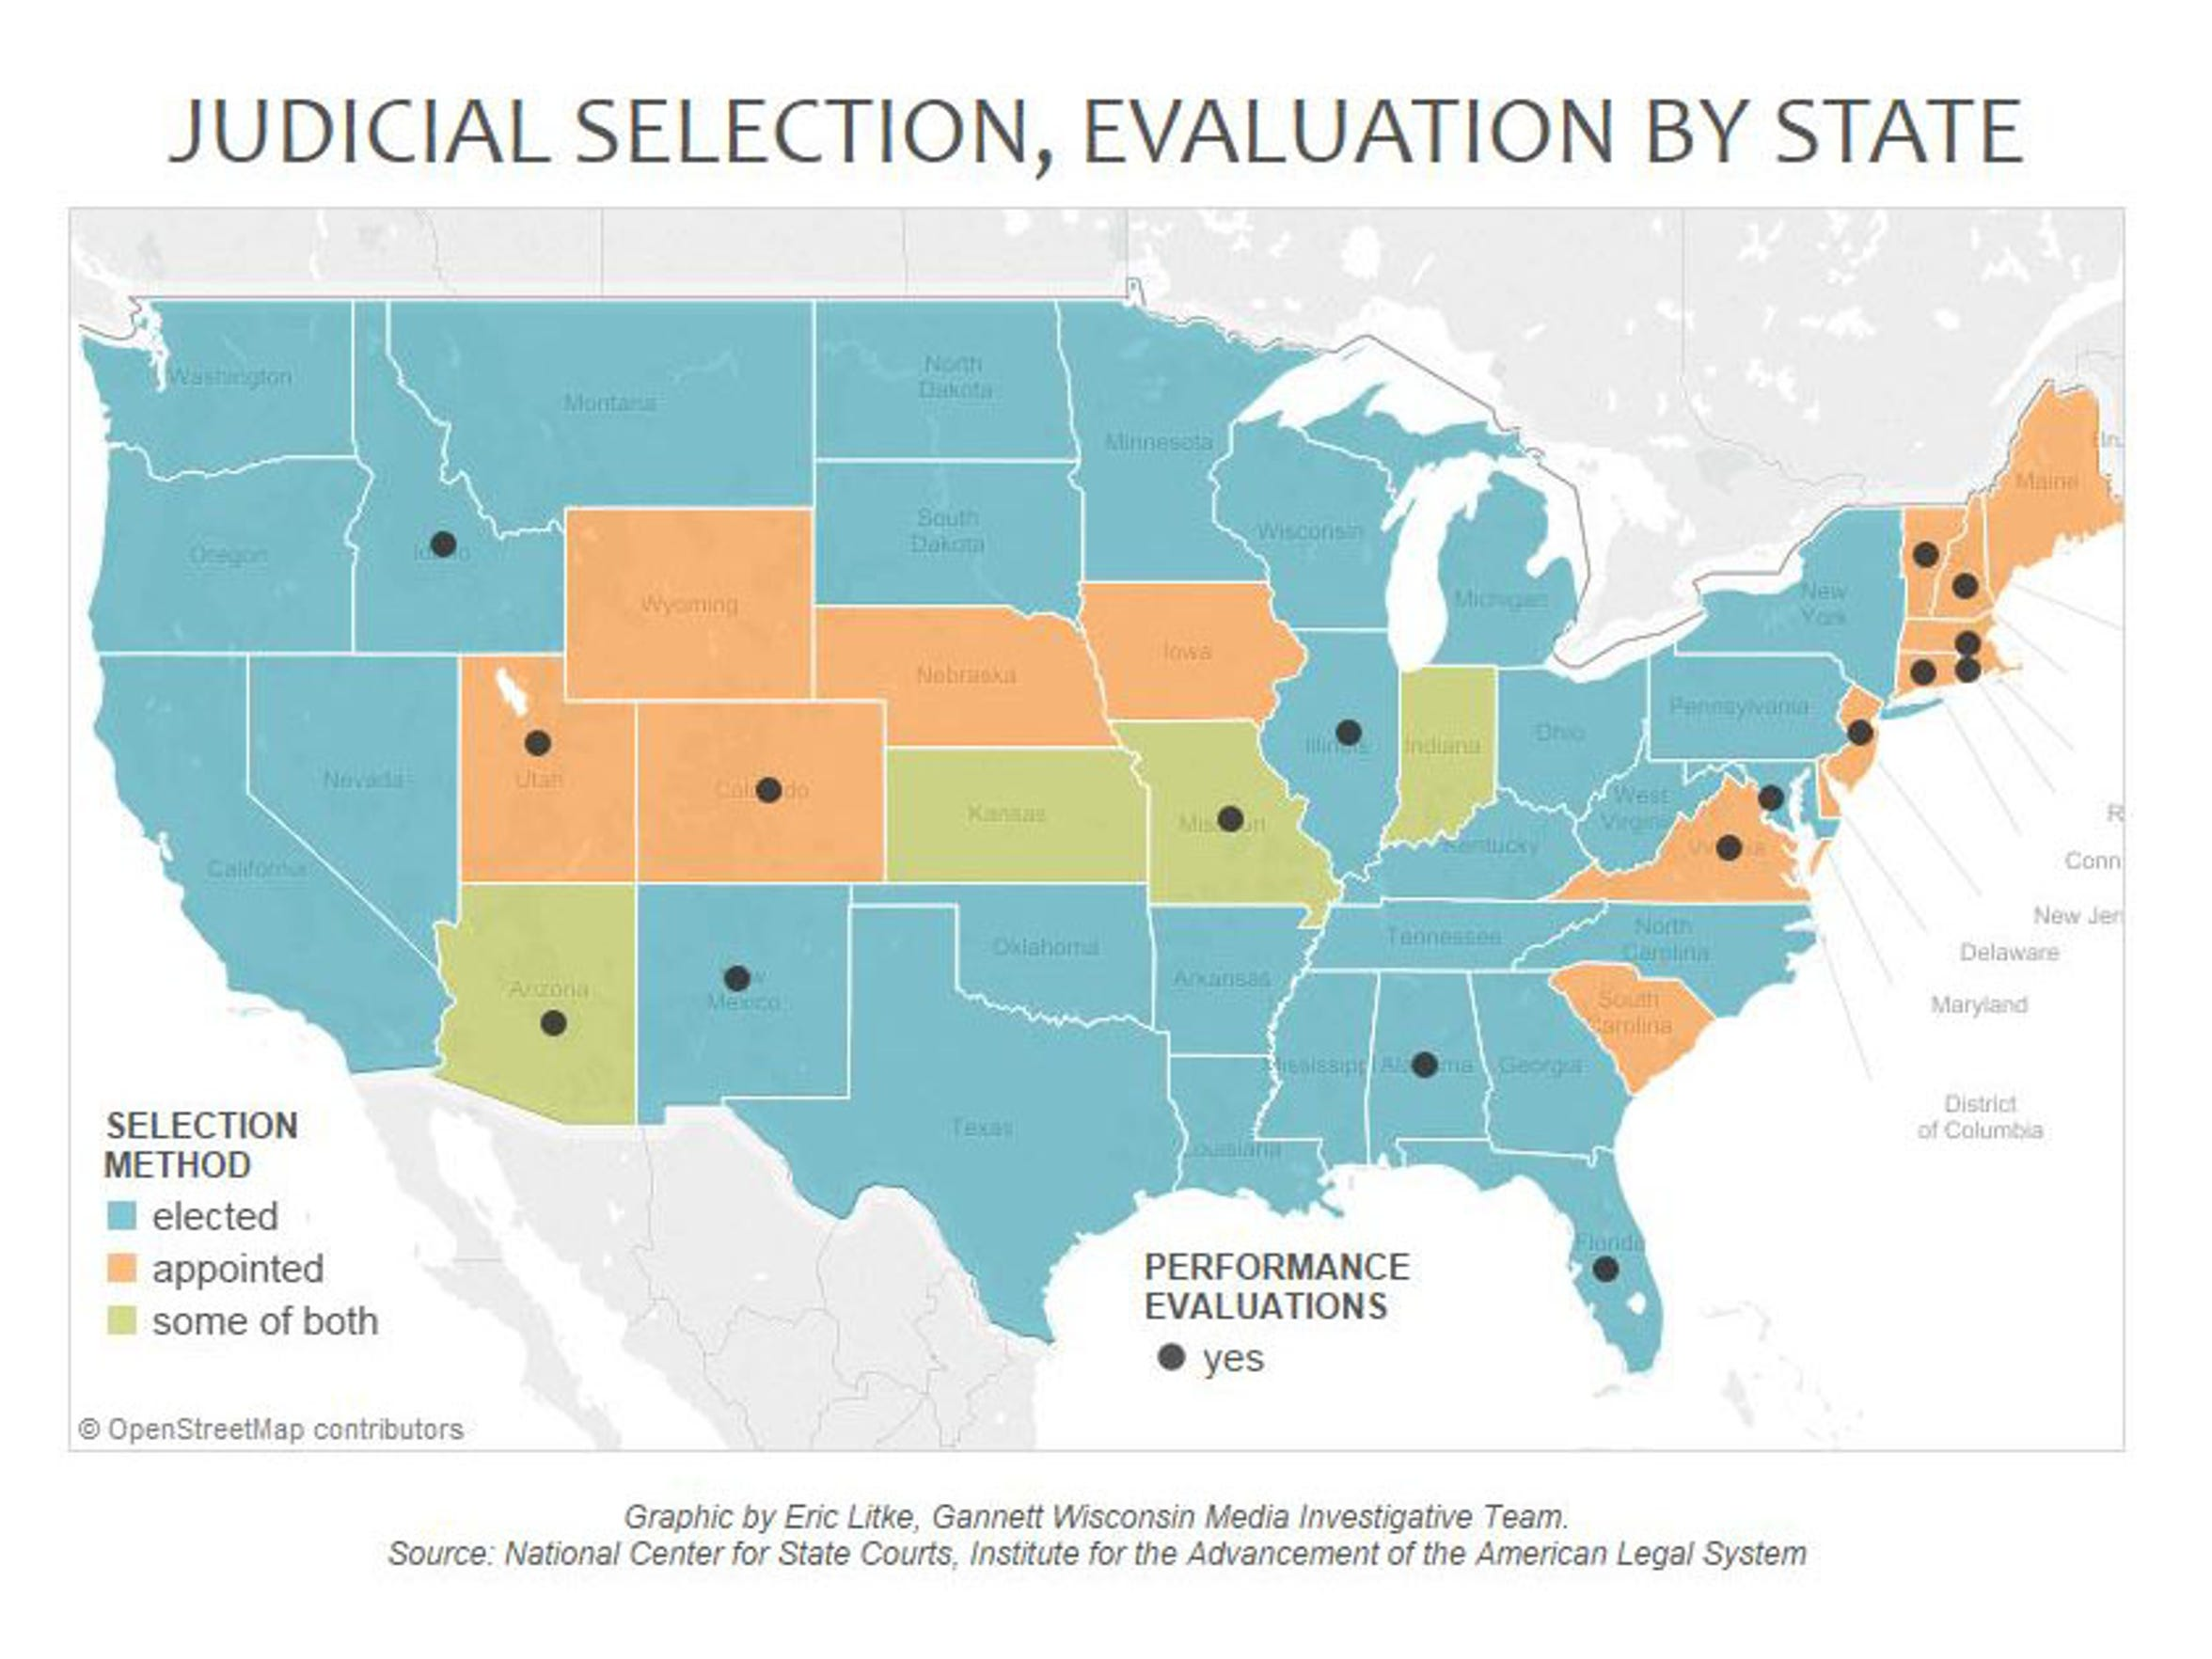 Judicial selection, evaluation by state